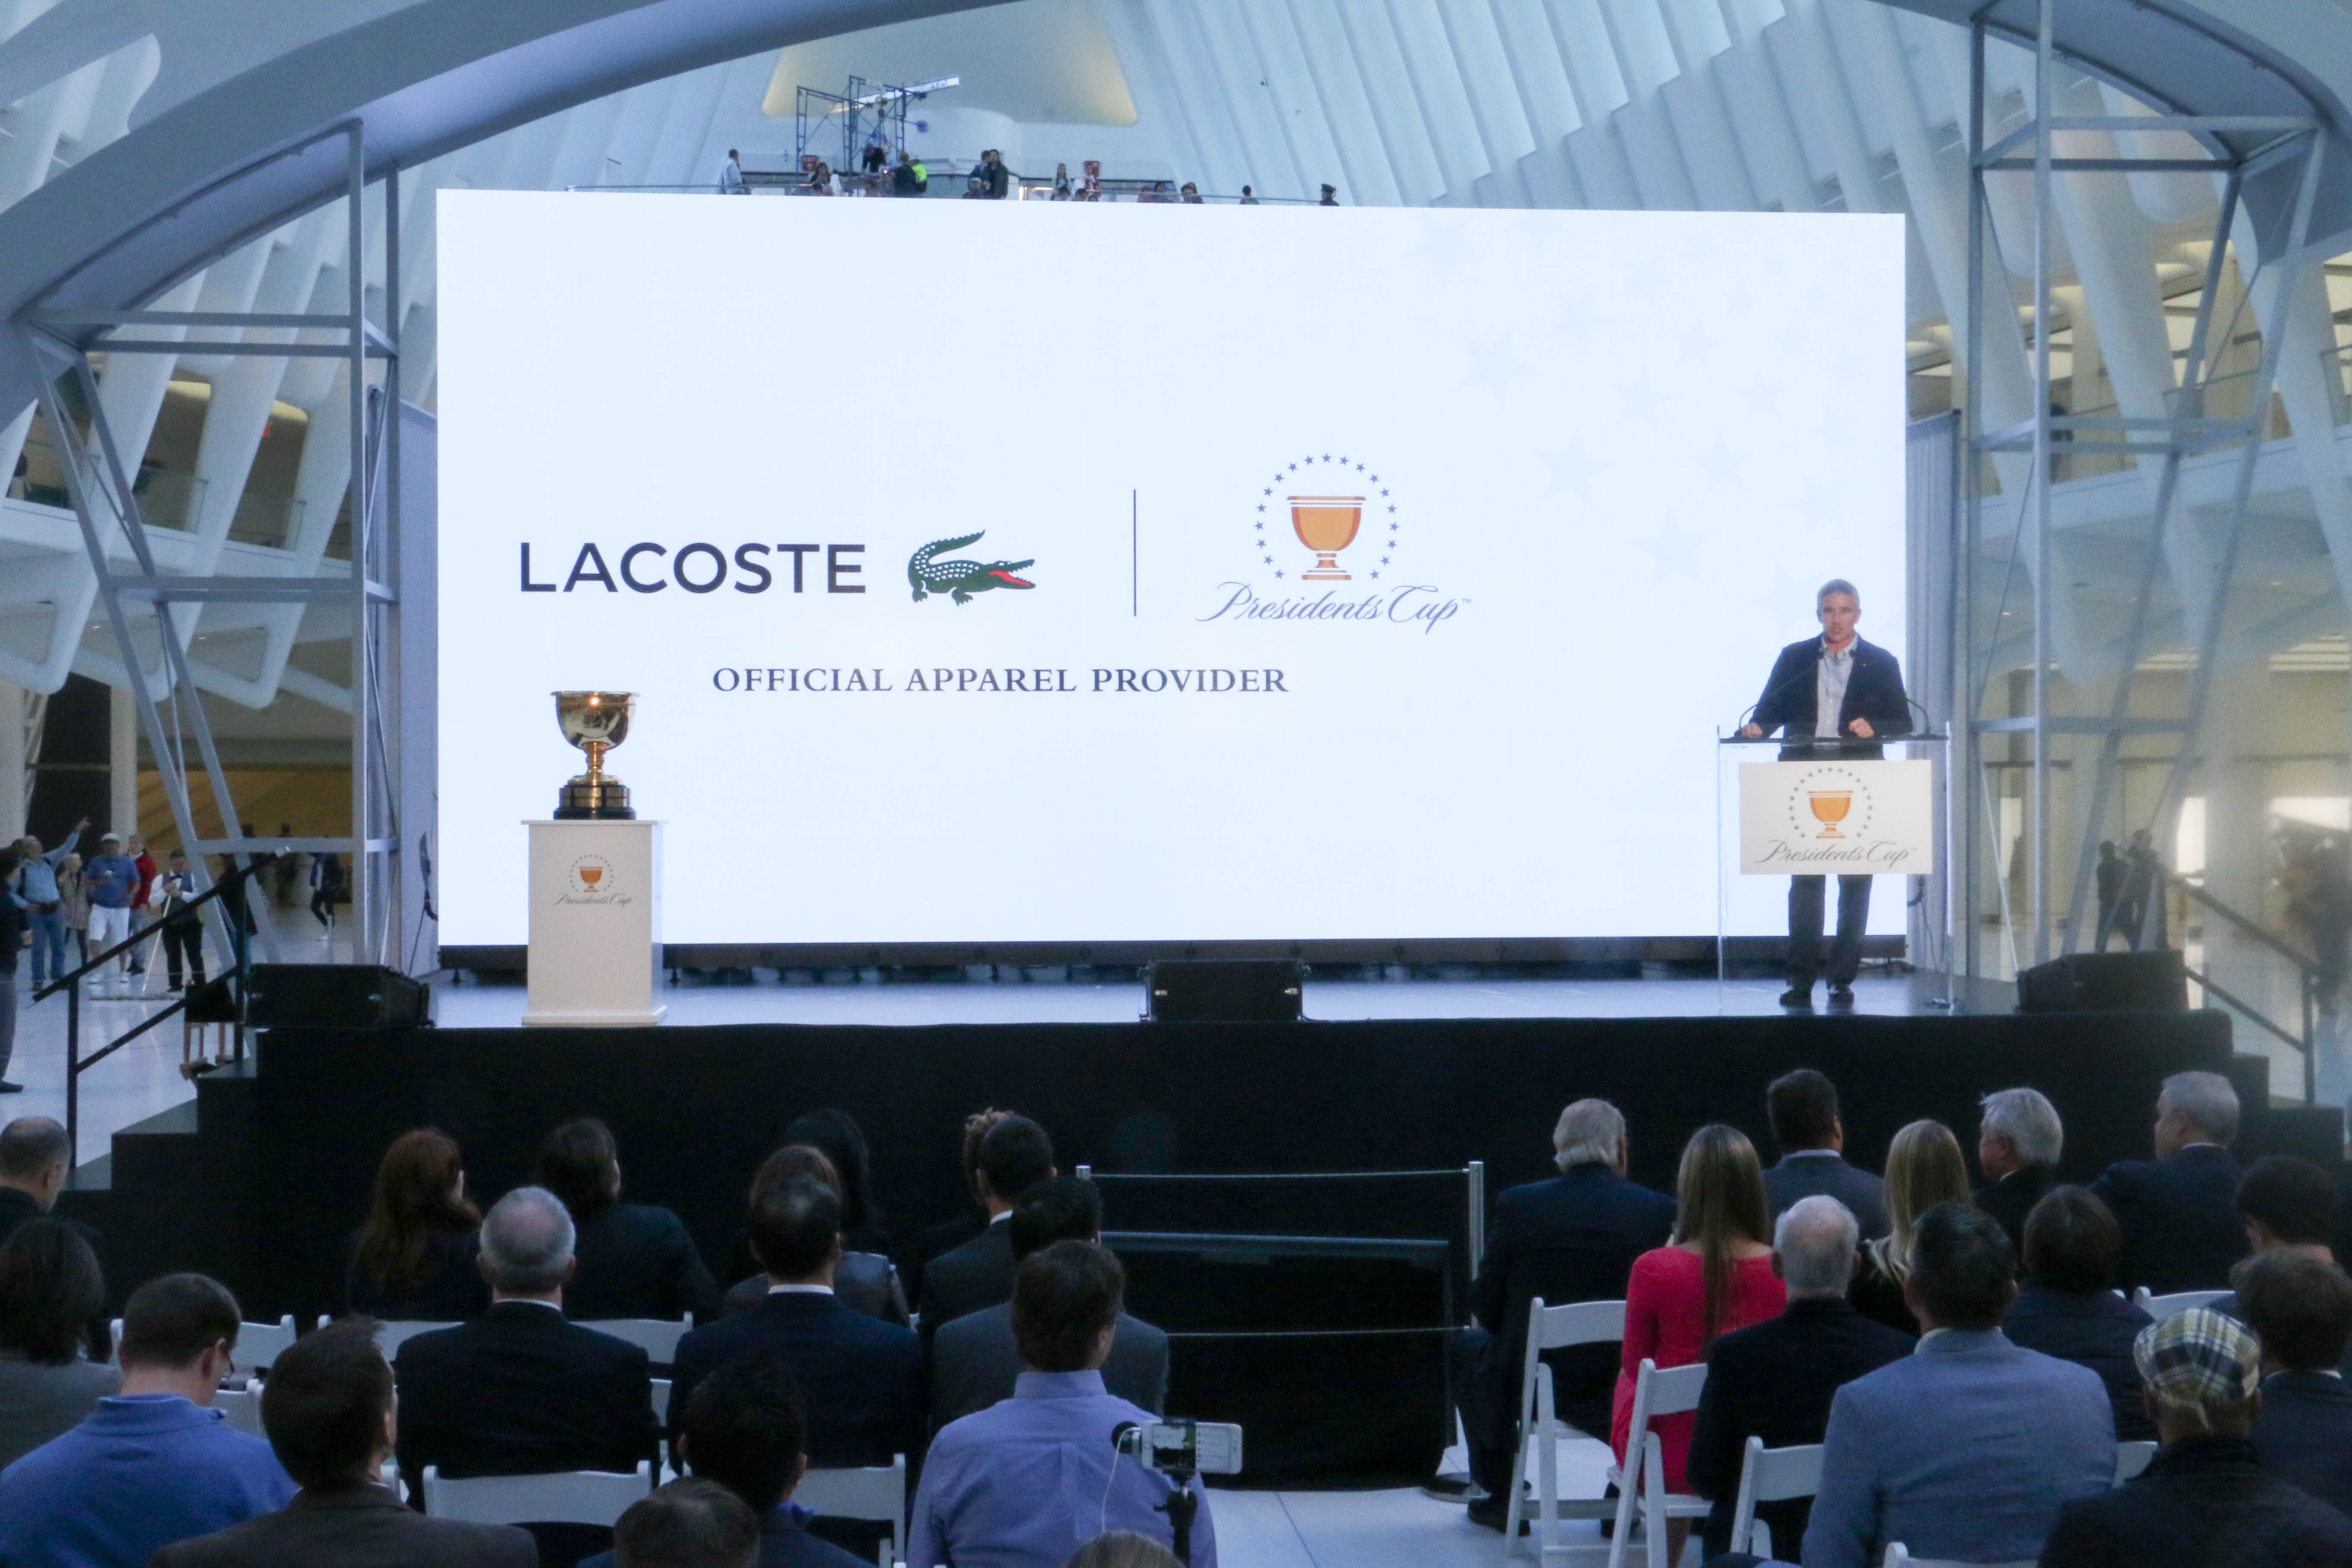 Lacoste Named OFFICIAL APPAREL PROVIDER OF THE PGA TOUR's PRESIDENTS CUP